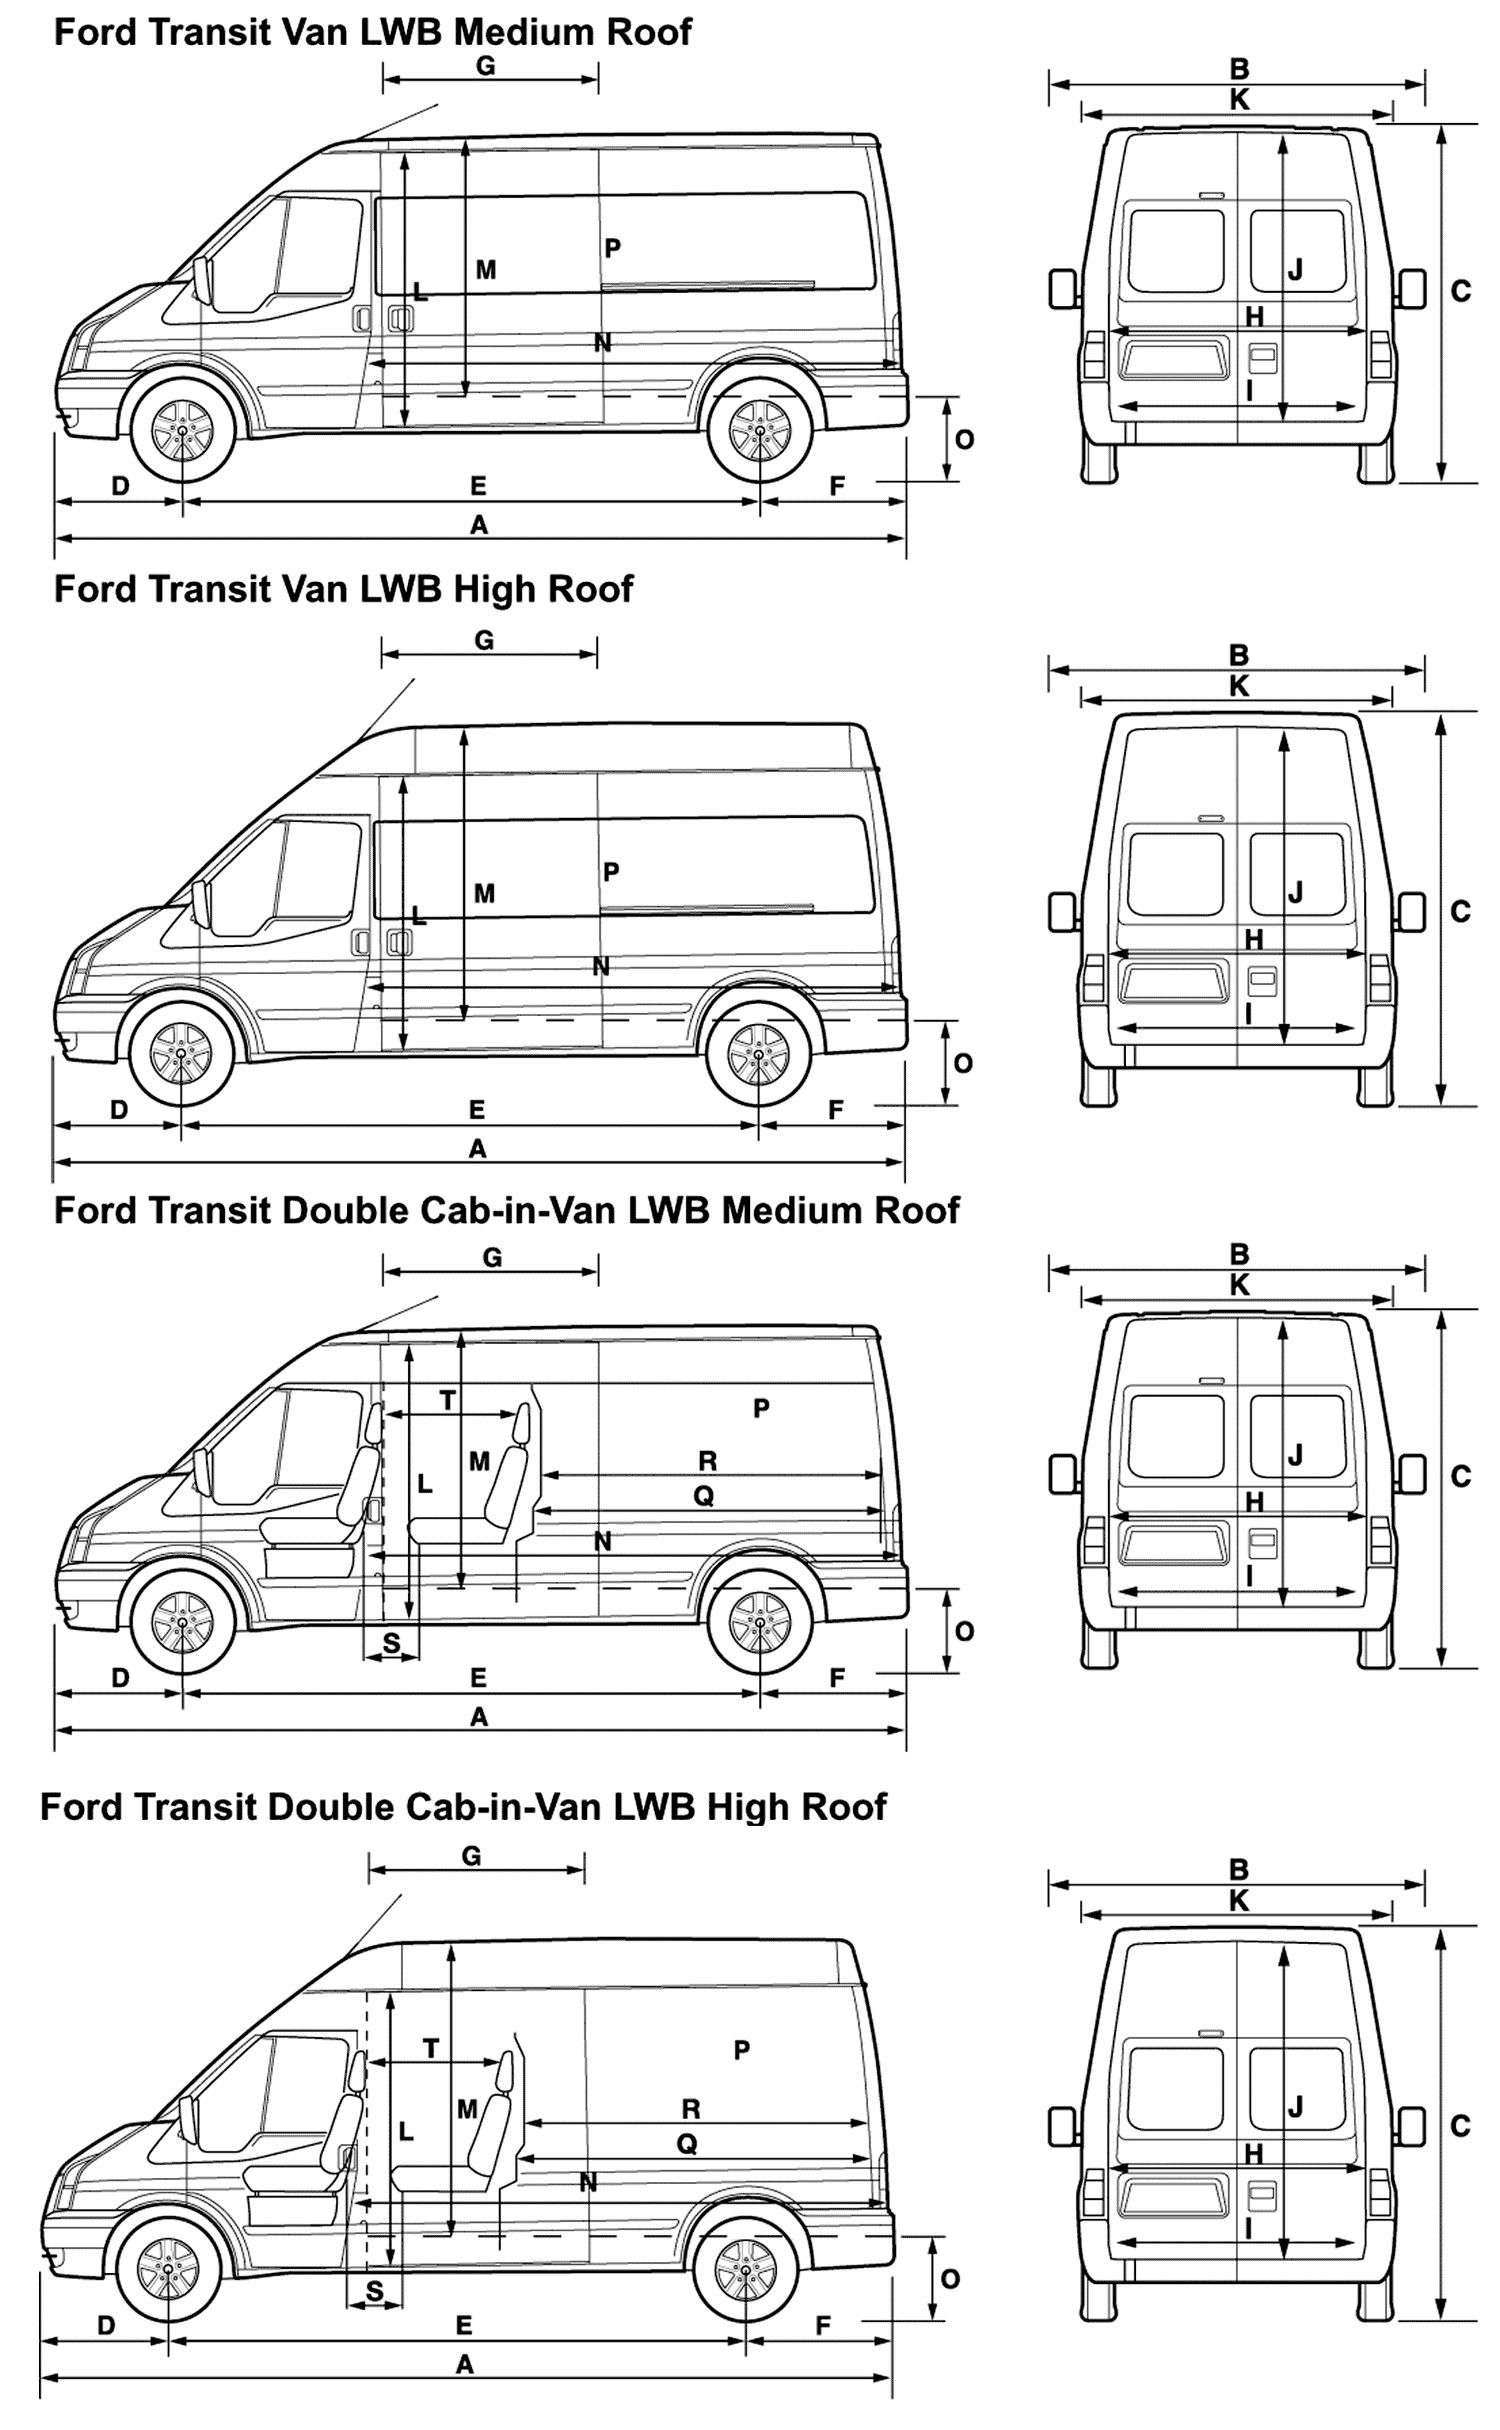 ford transit connect interior dimensions pictures 2008 ford transu pinterest ford transit. Black Bedroom Furniture Sets. Home Design Ideas